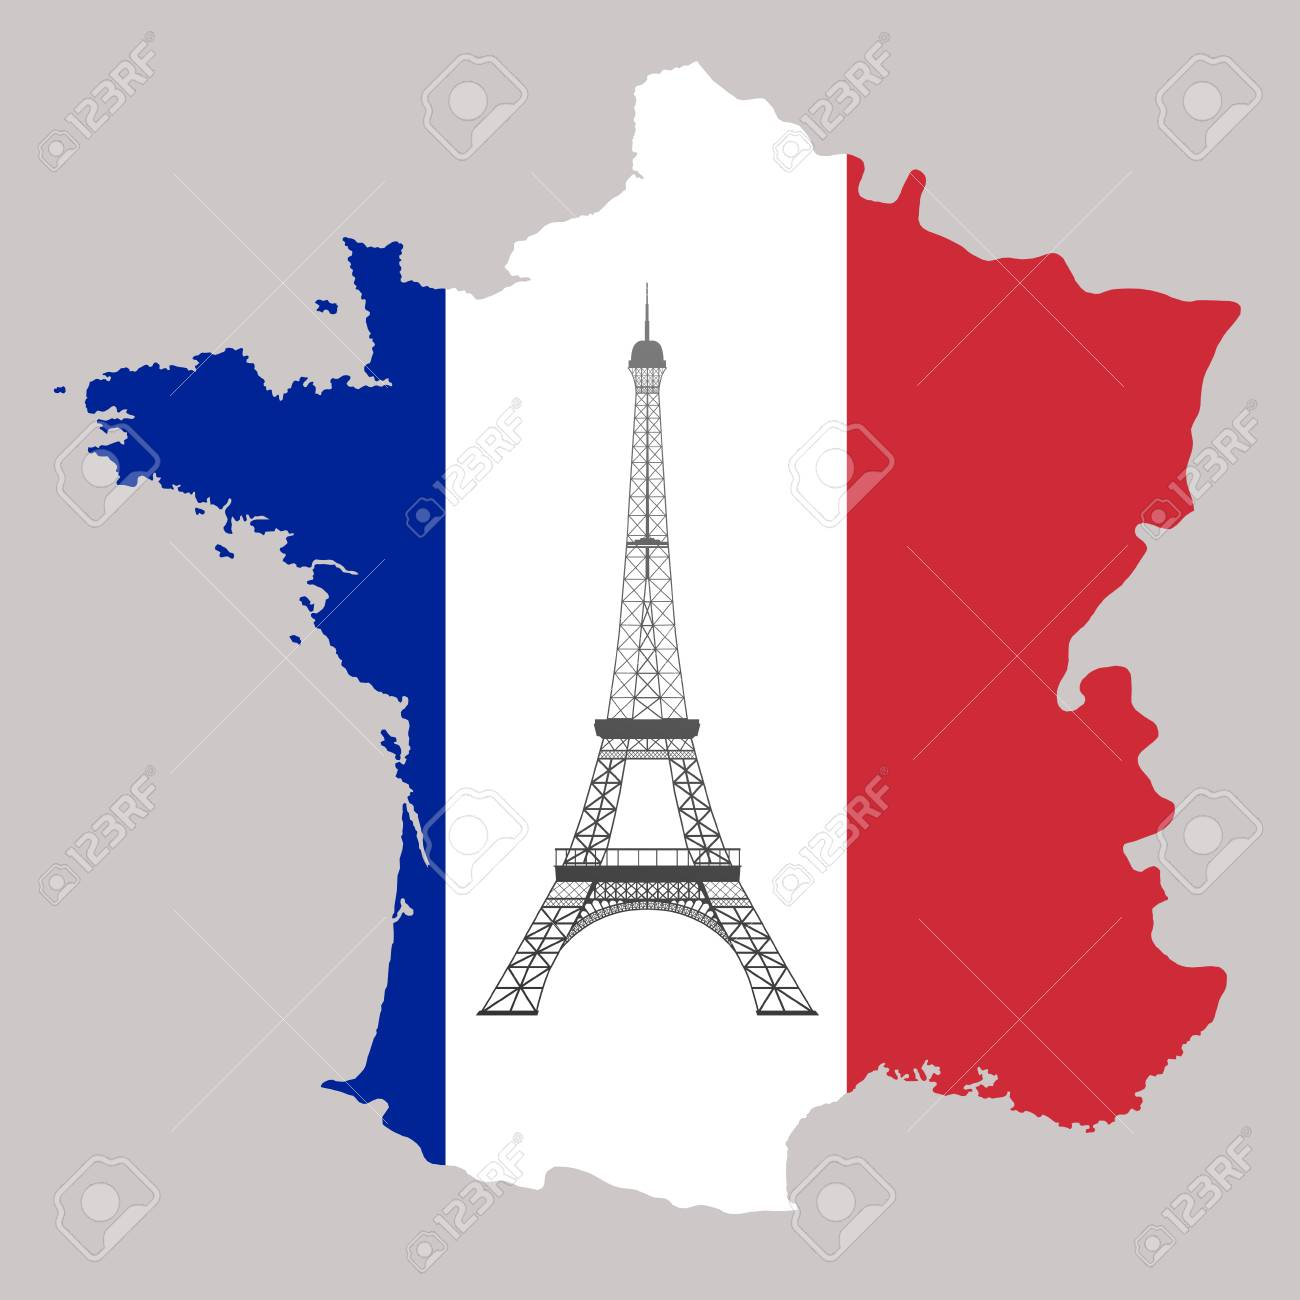 Map Of France Eiffel Tower.Map Of France With Flag Colour And Eiffel Tower